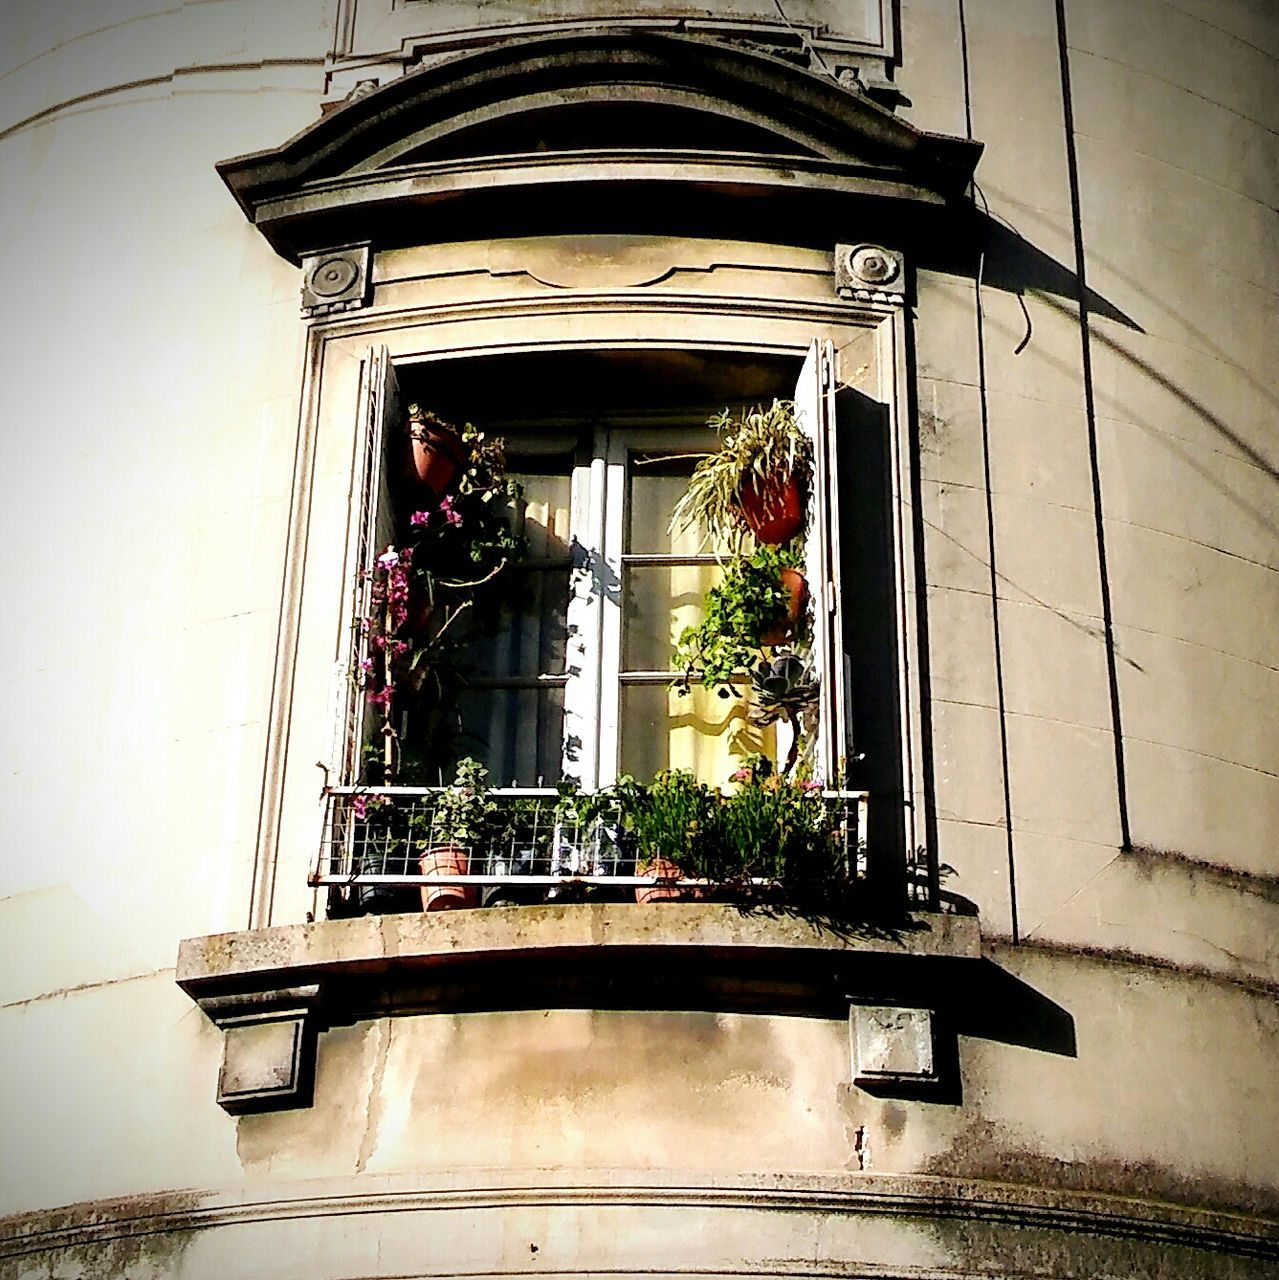 architecture, built structure, building exterior, window, day, low angle view, no people, plant, outdoors, growth, flower, nature, window box, close-up